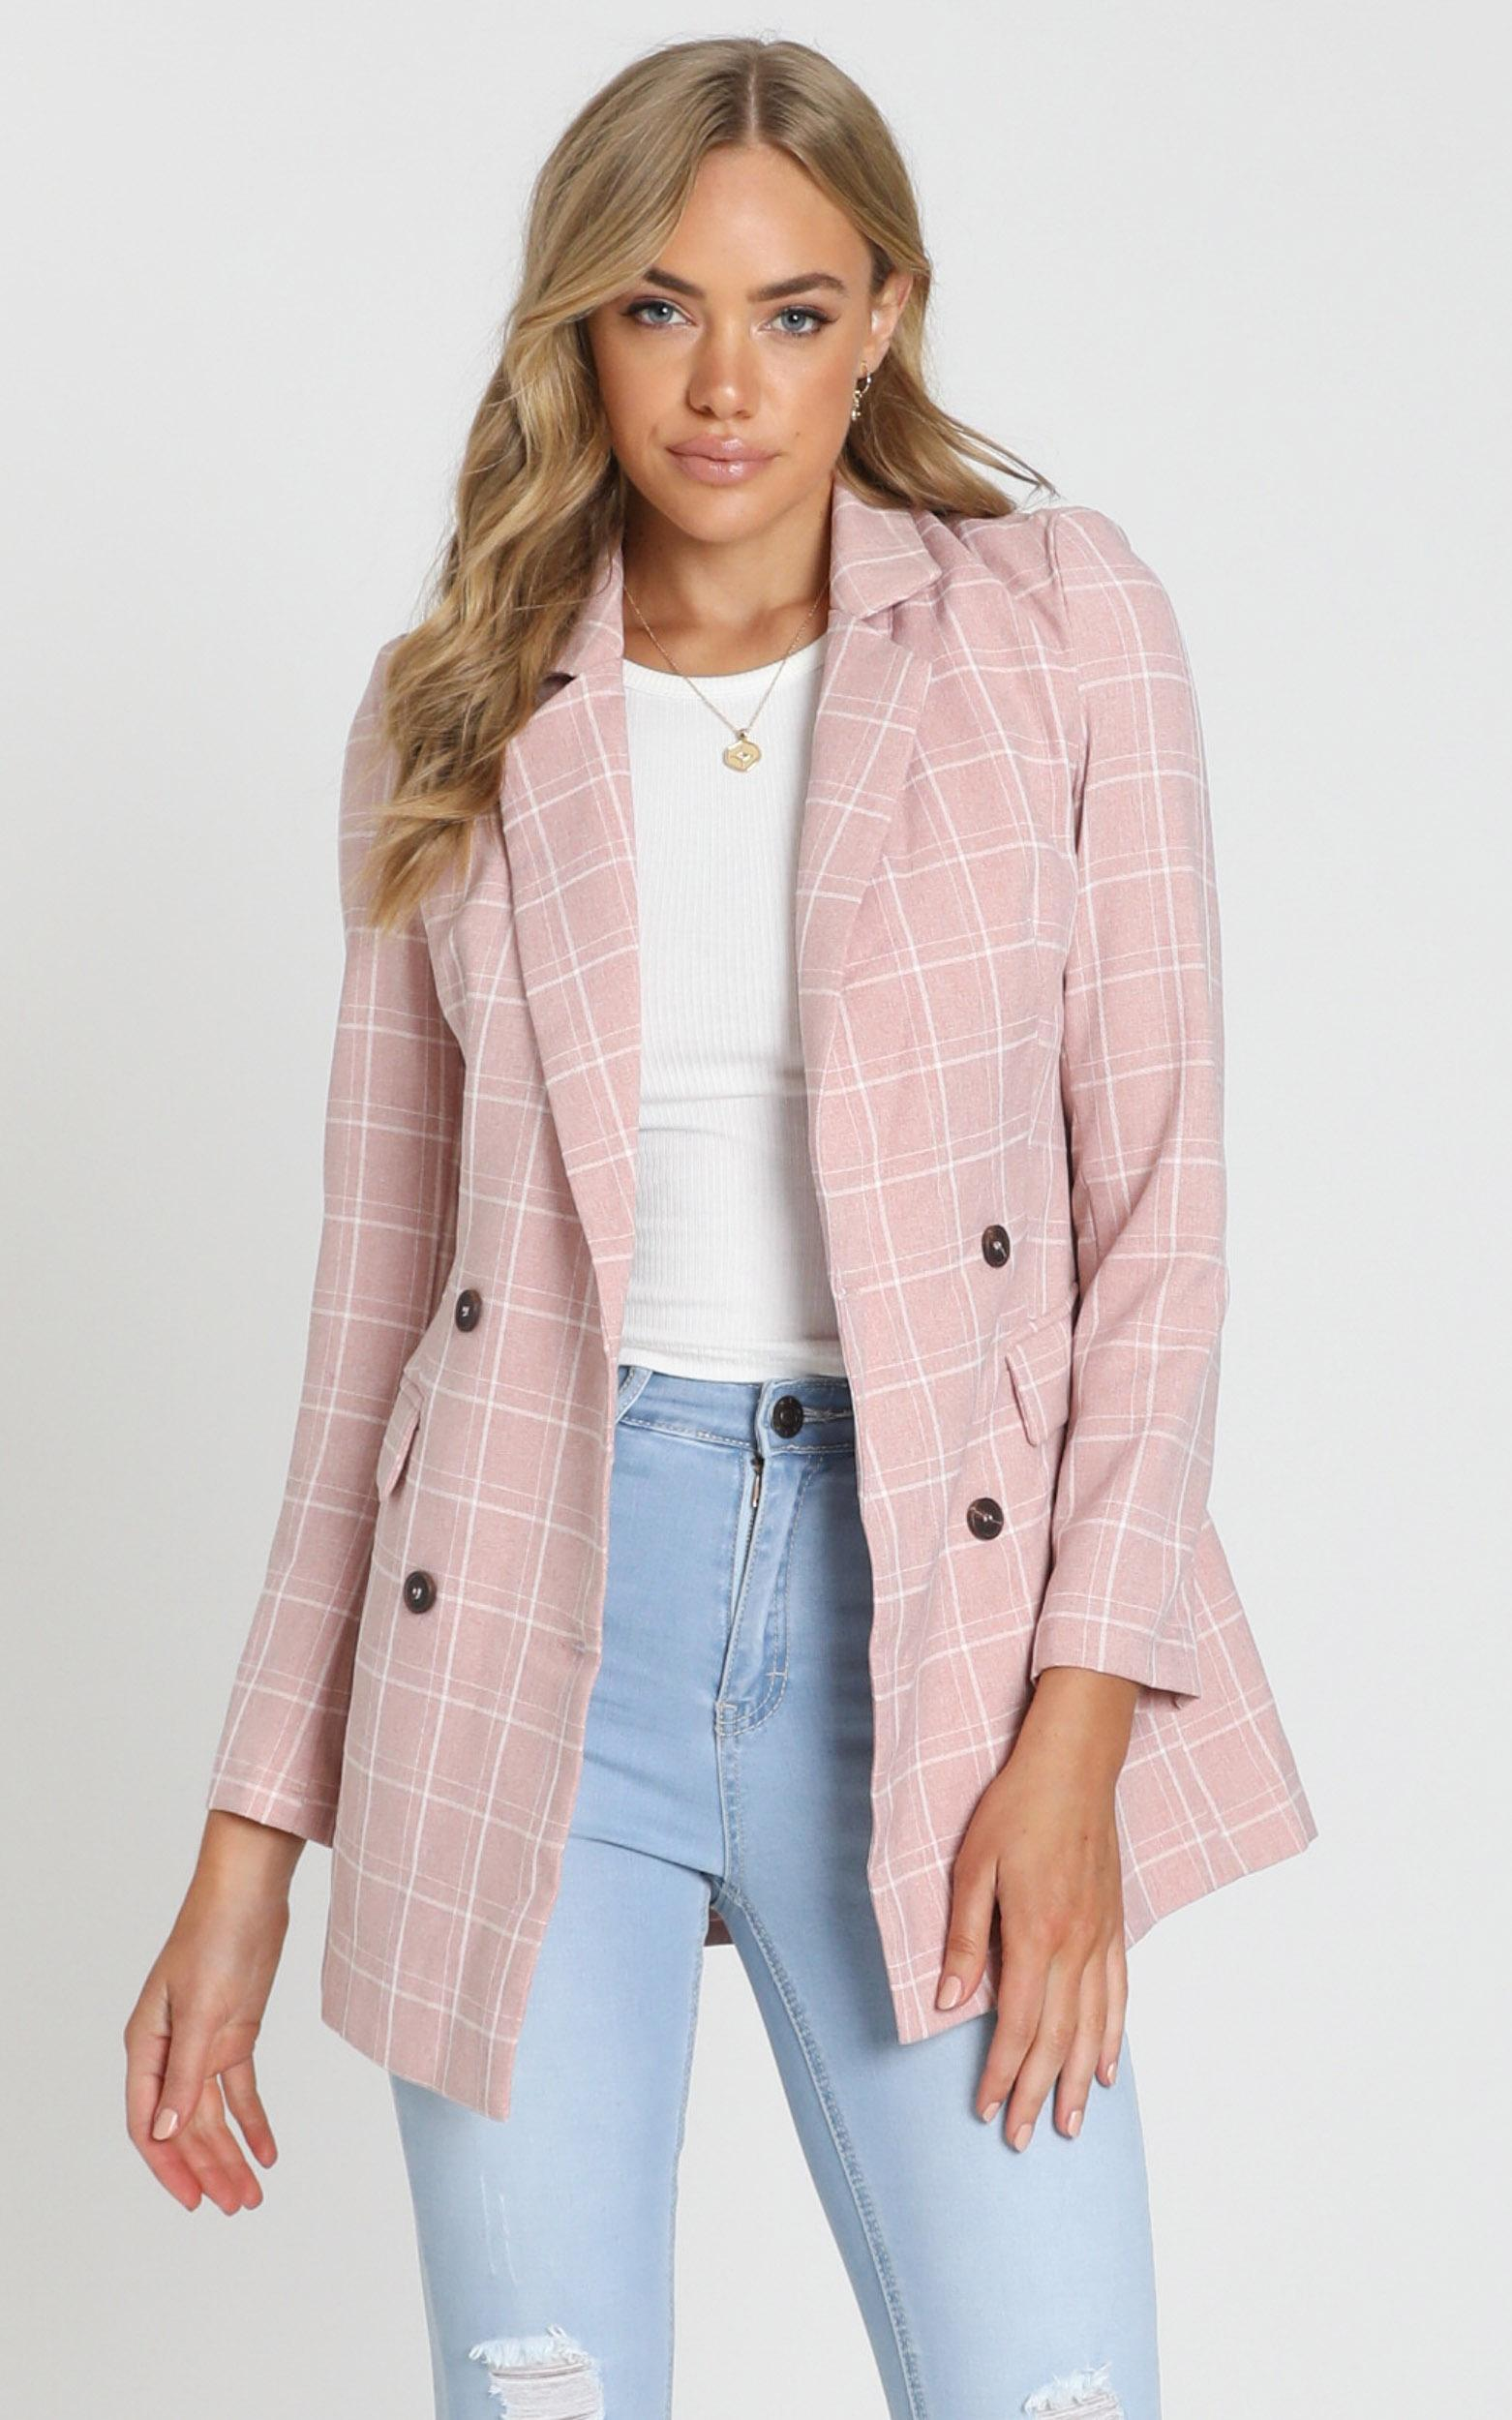 Sort It Out Blazer in blush check - 20 (XXXXL), Blush, hi-res image number null